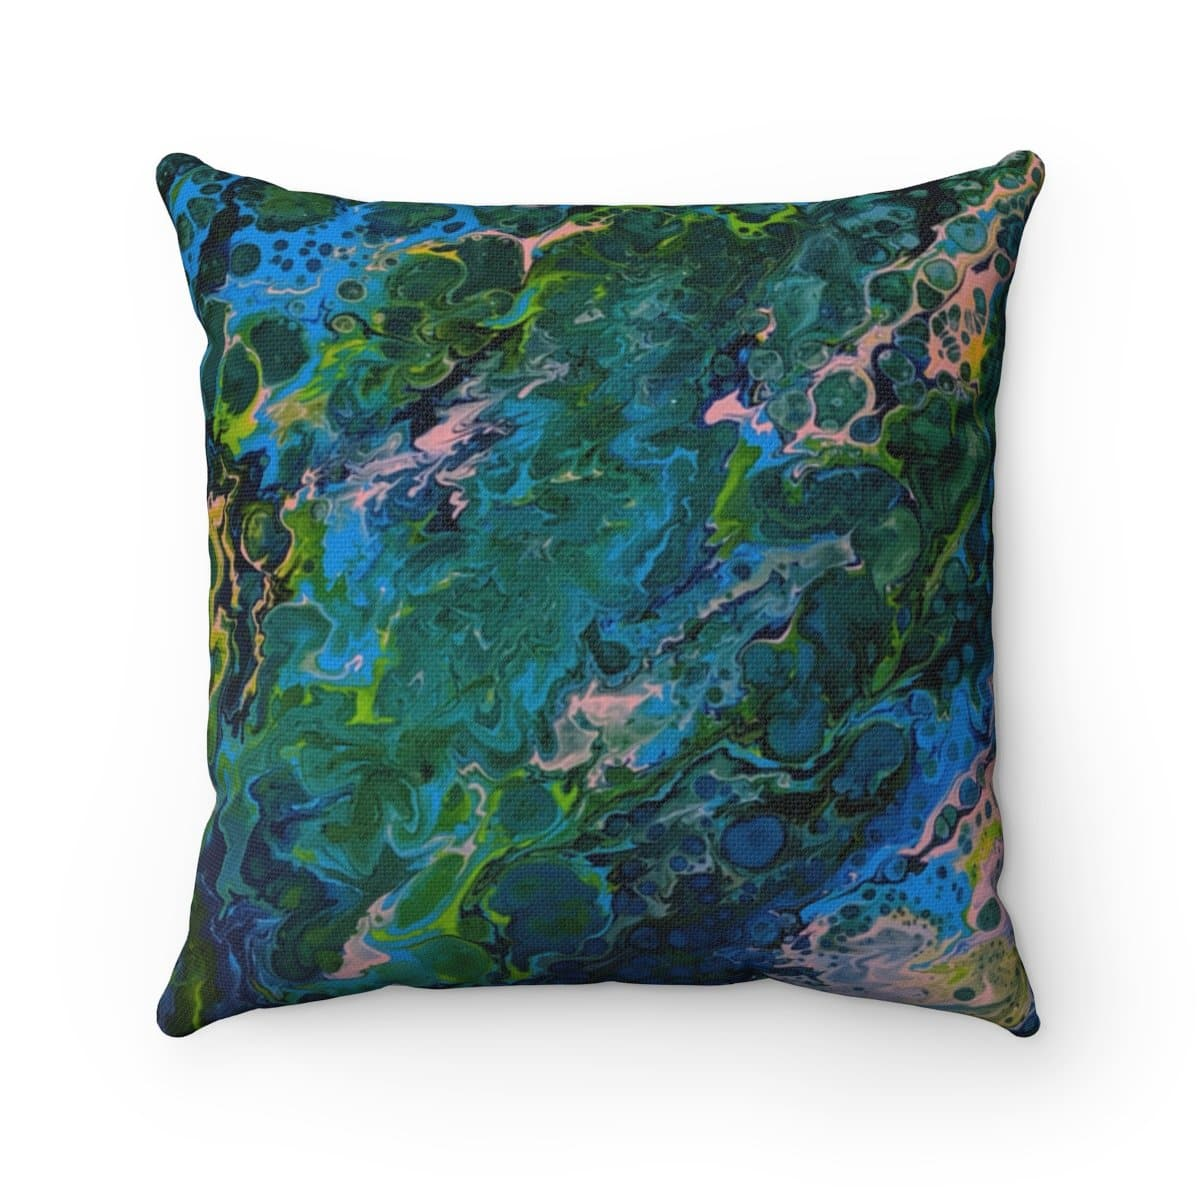 Blue Lagoon - Spun Polyester Square Pillow